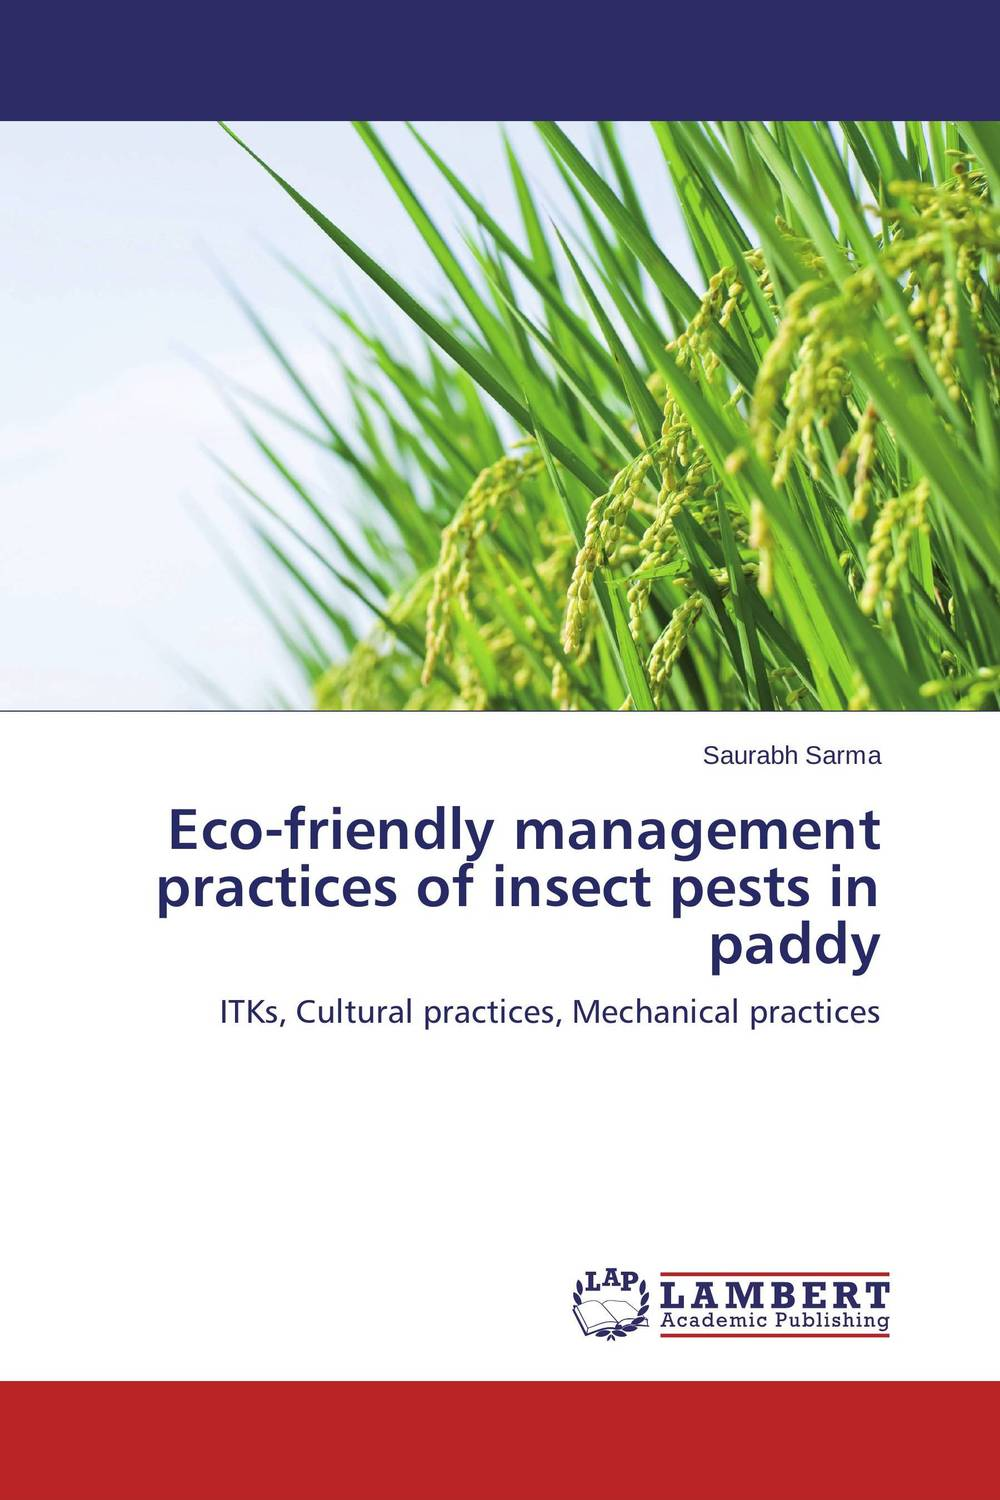 Eco-friendly management practices of insect pests in paddy eco friendly dyeing of silk with natural dye